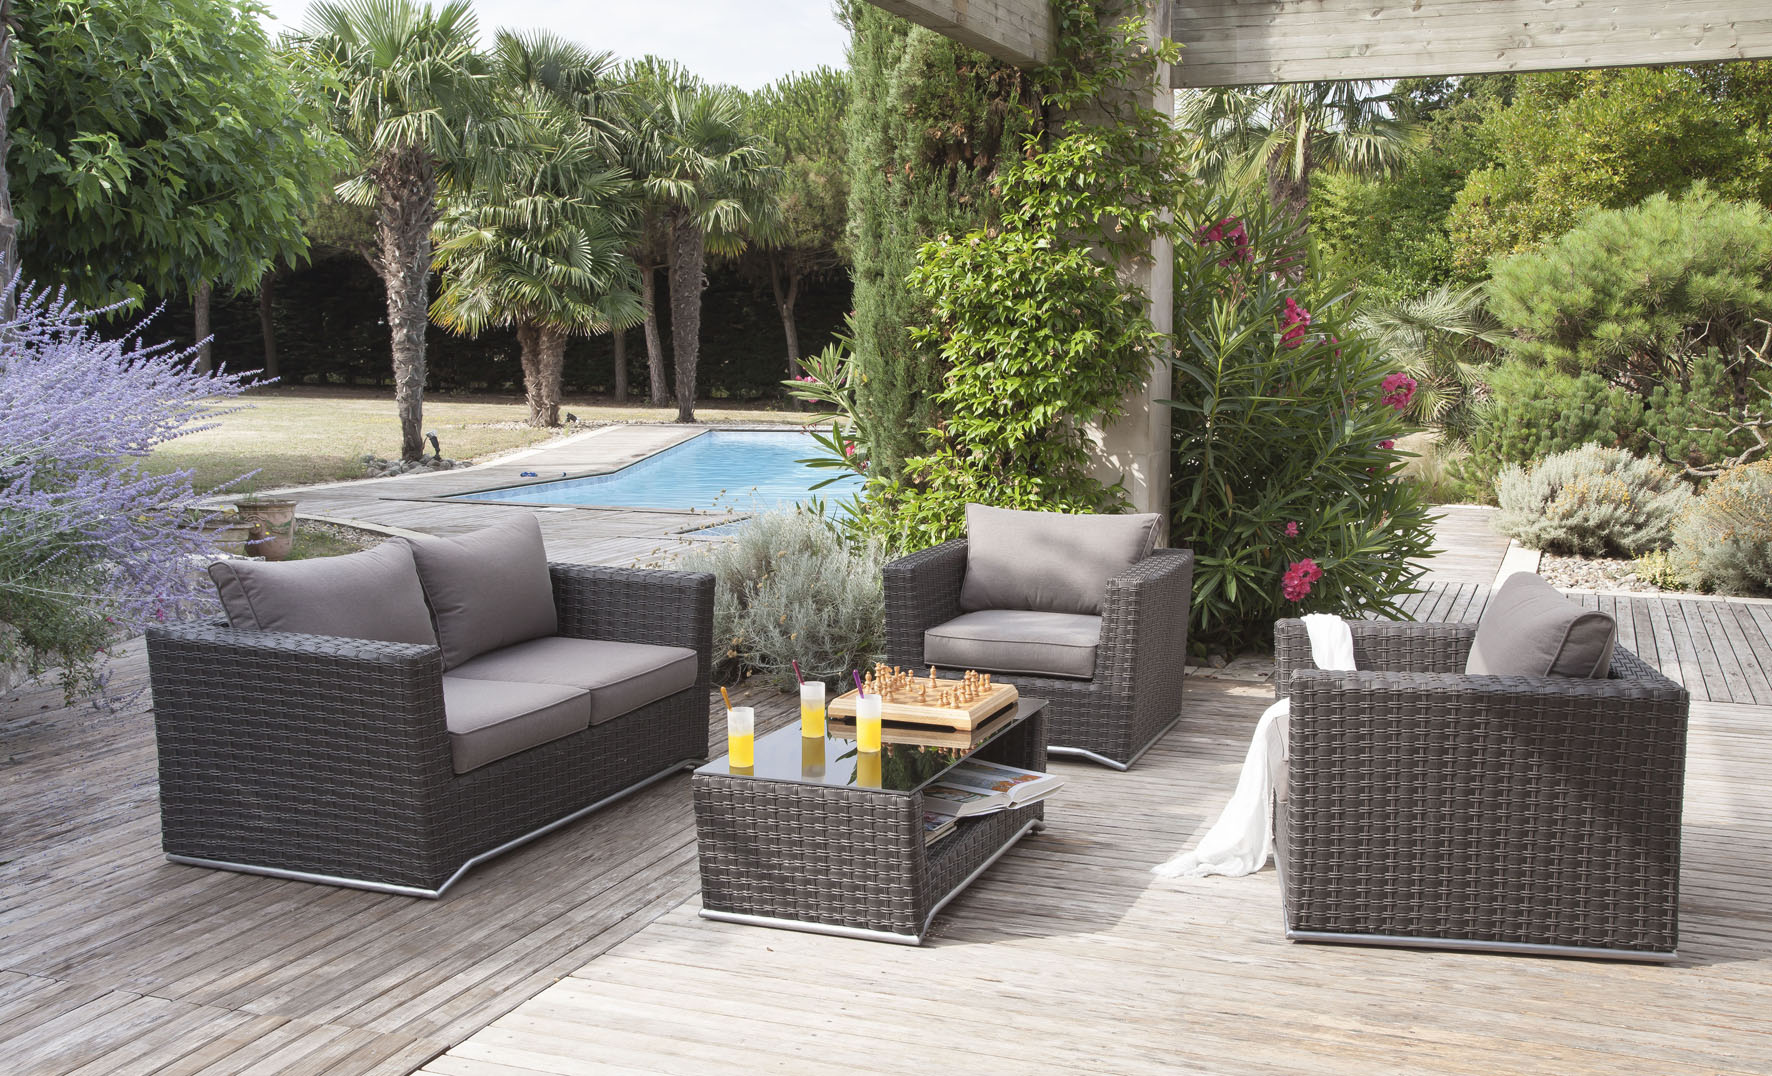 outdoor la nouvelle collection proloisirs jacky la main verte. Black Bedroom Furniture Sets. Home Design Ideas